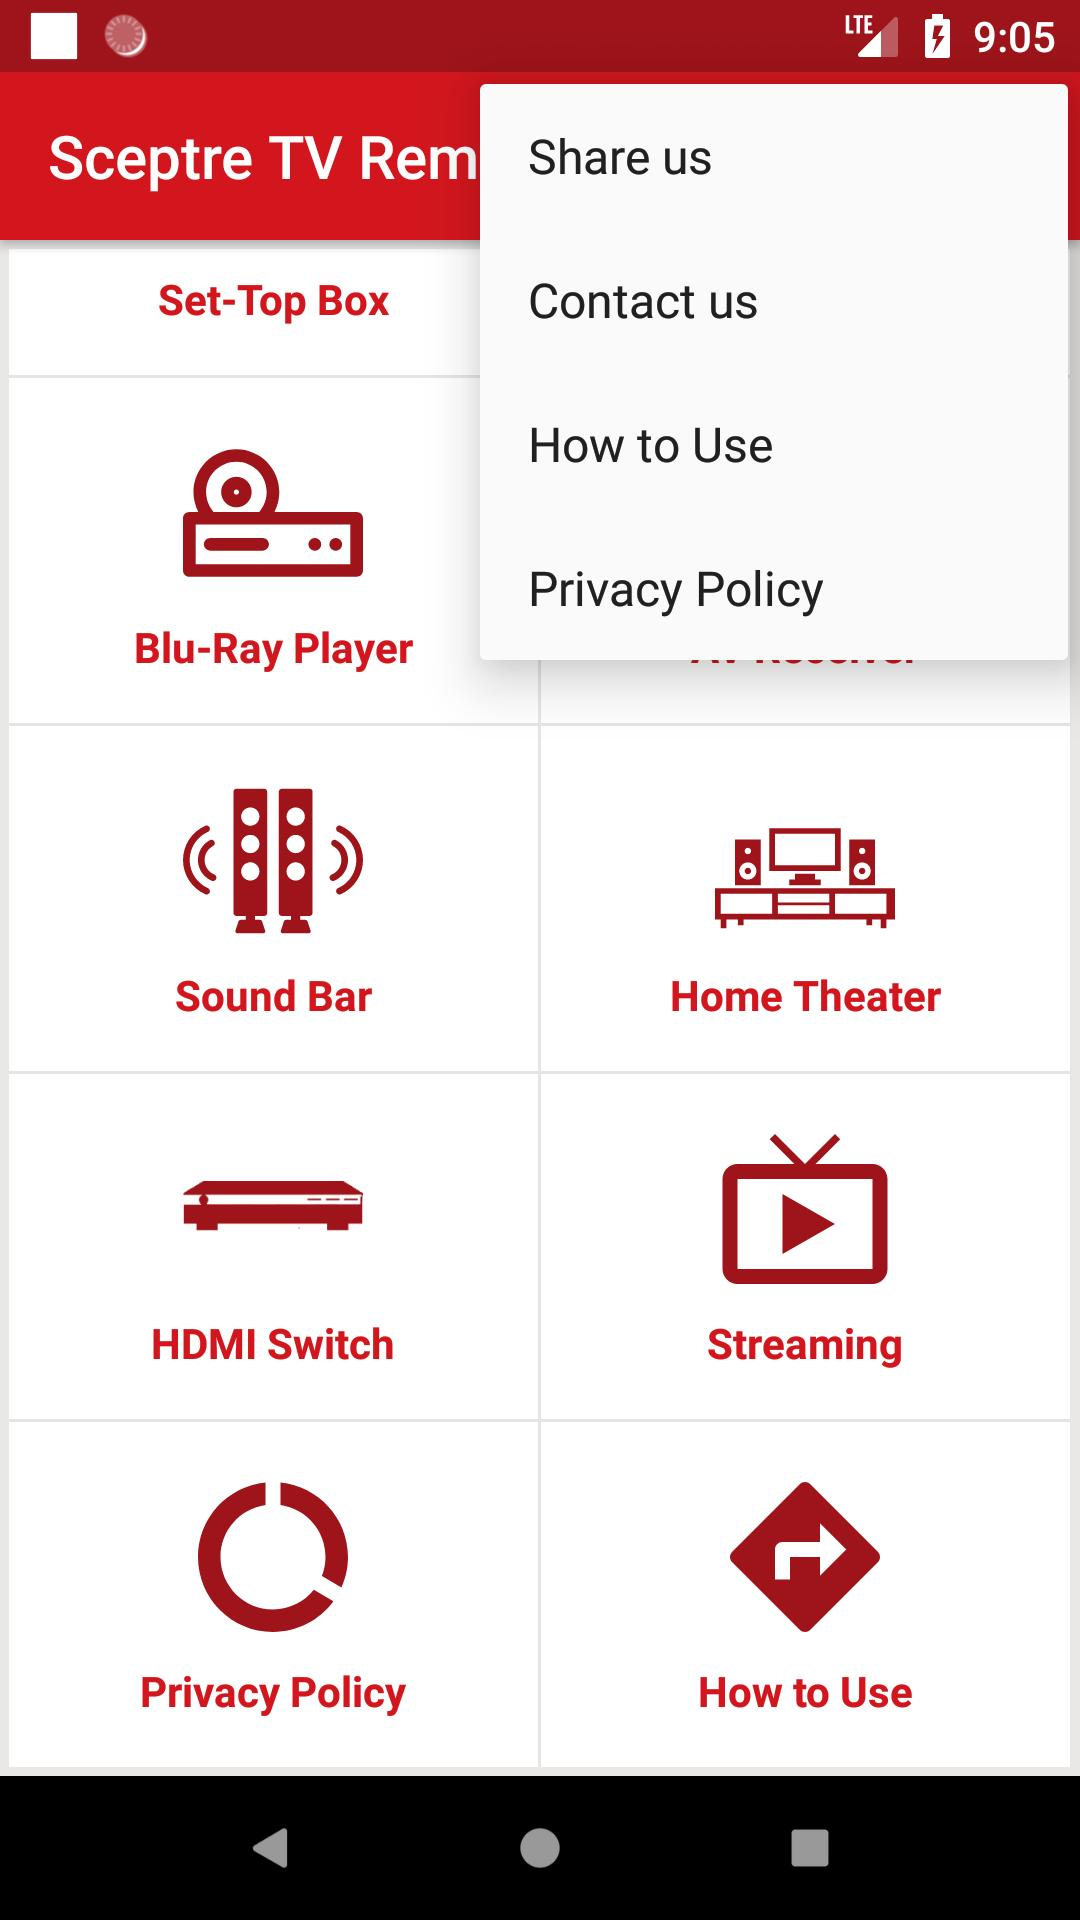 Sceptre TV Remote for Android - APK Download